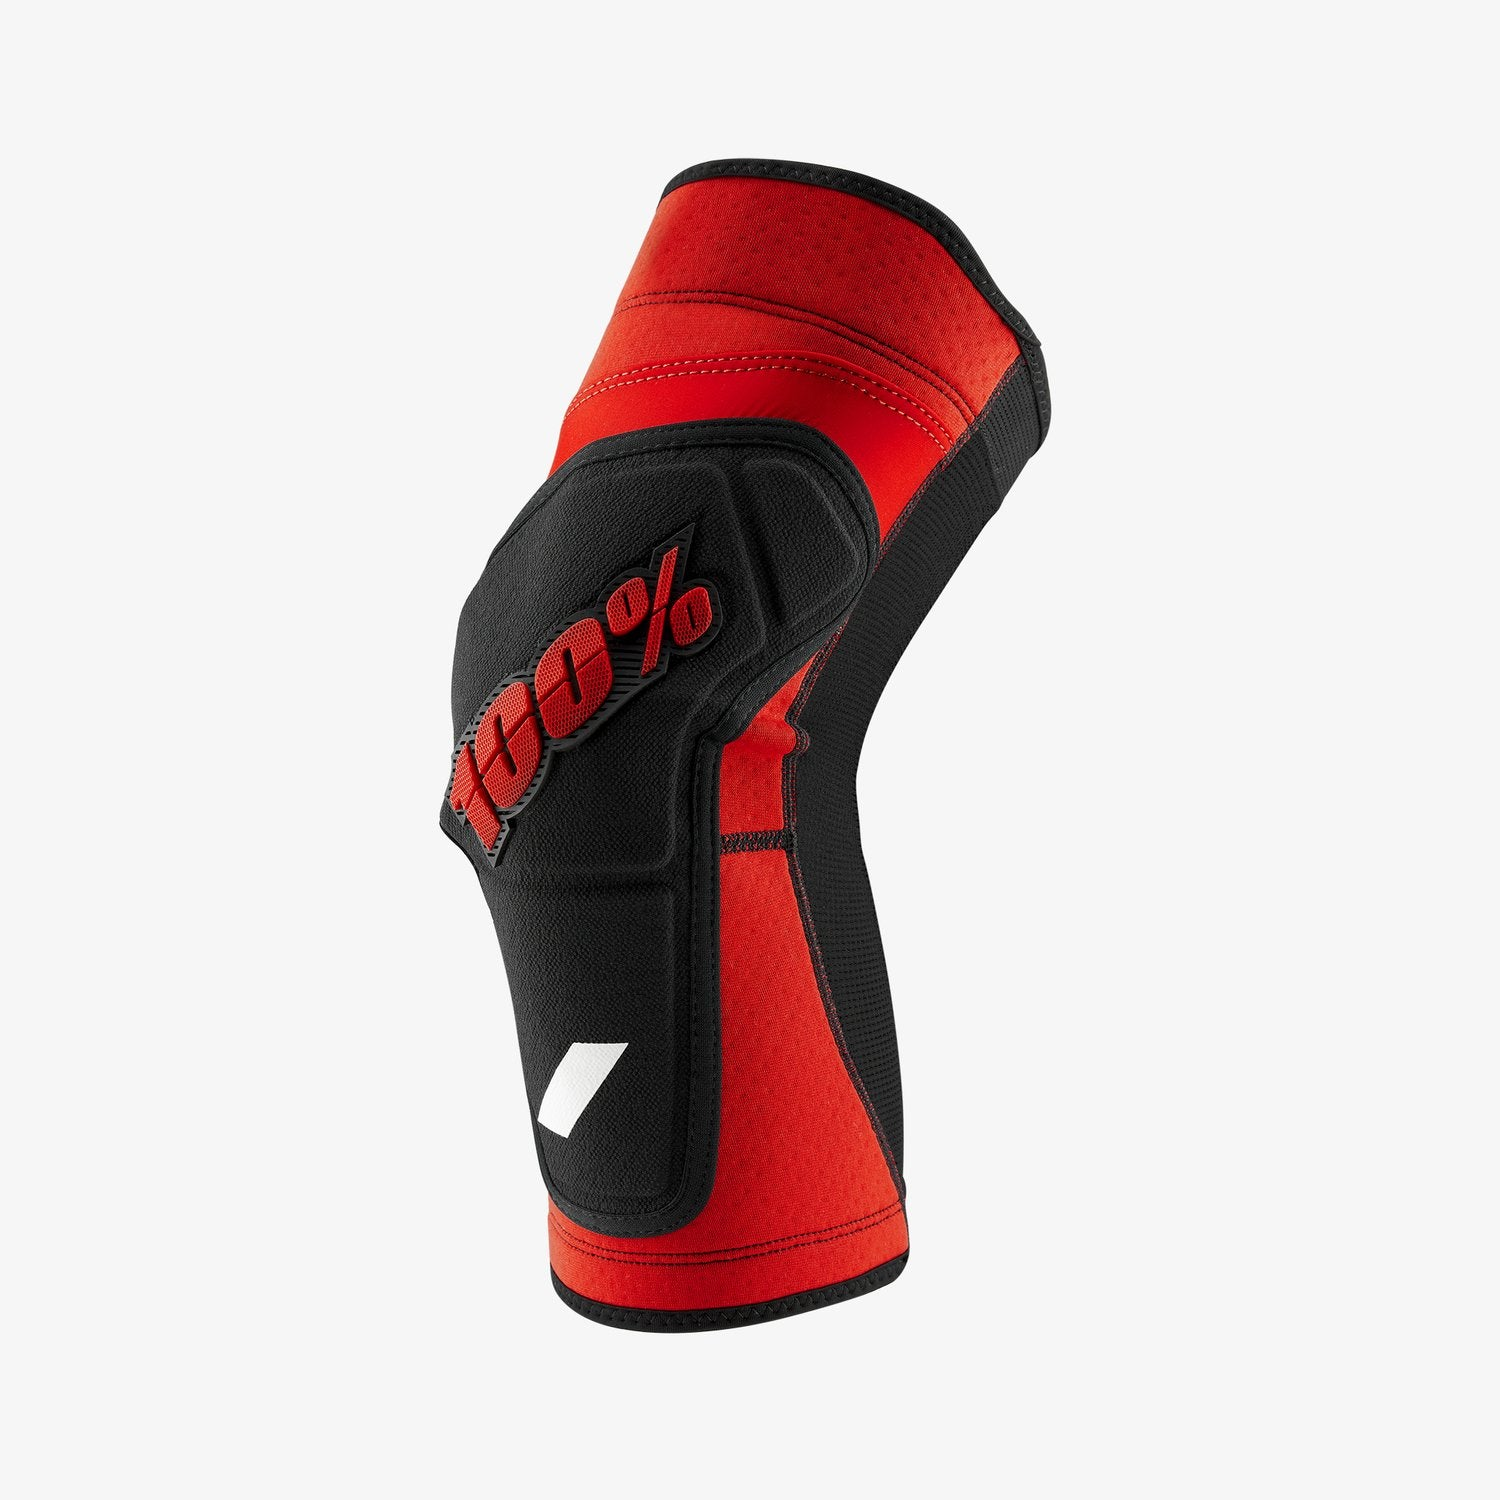 Ride 100% RIDECAMP Knee Guards/Pads, Color: Red/Black- Size SM